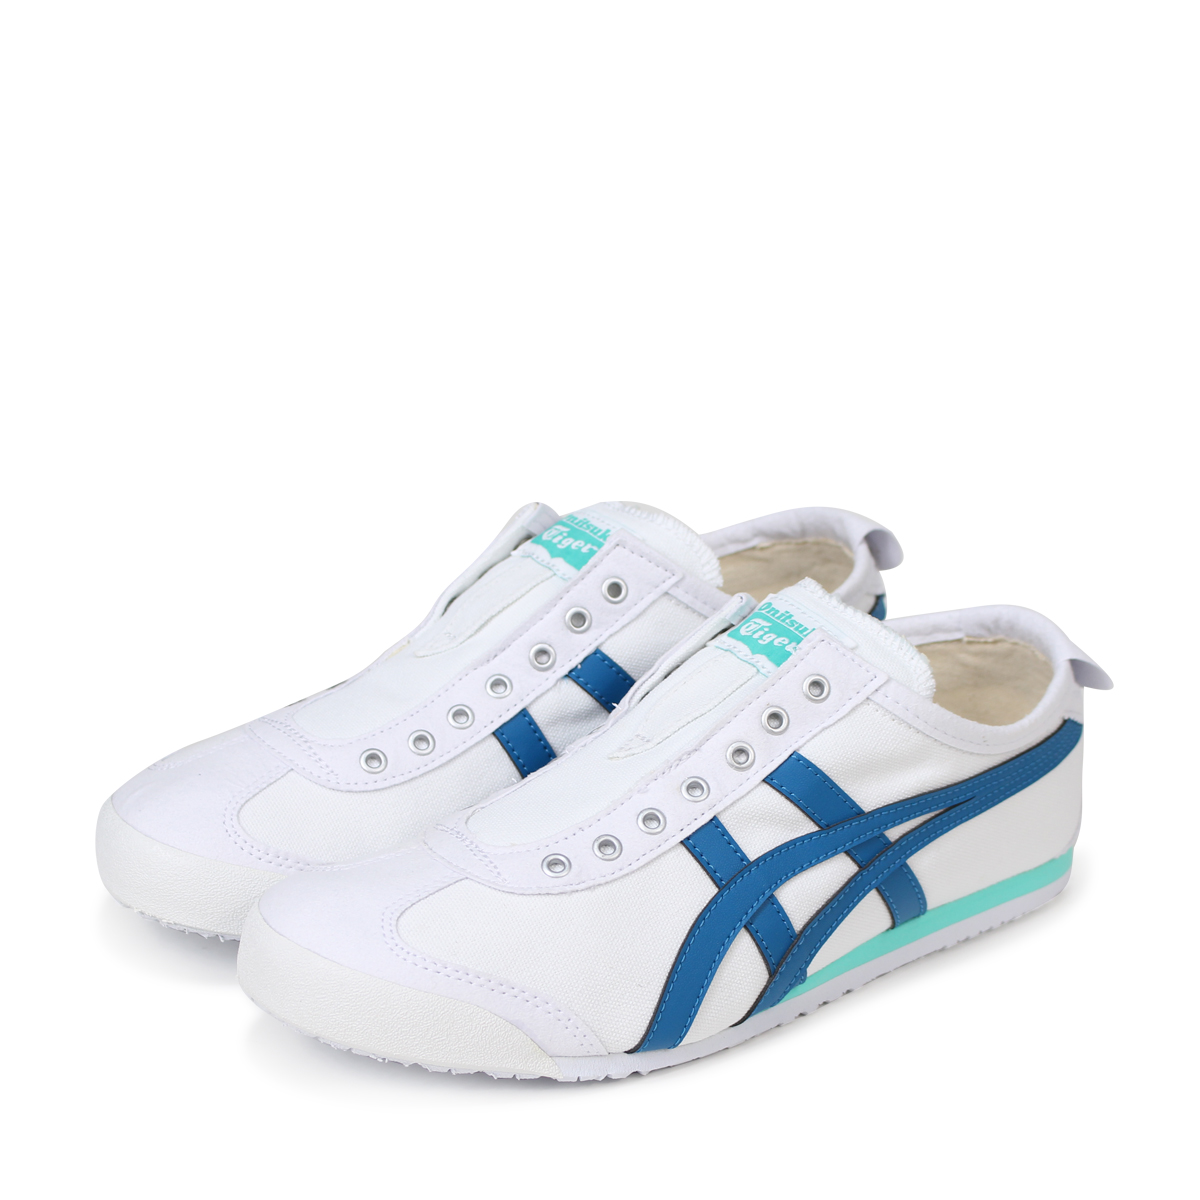 new styles af079 03c85 Onitsuka Tiger MEXICO 66 SLIP-ON Onitsuka tiger Mexico 66 slip-ons men gap  Dis sneakers TH3K0N-0146 white [184]